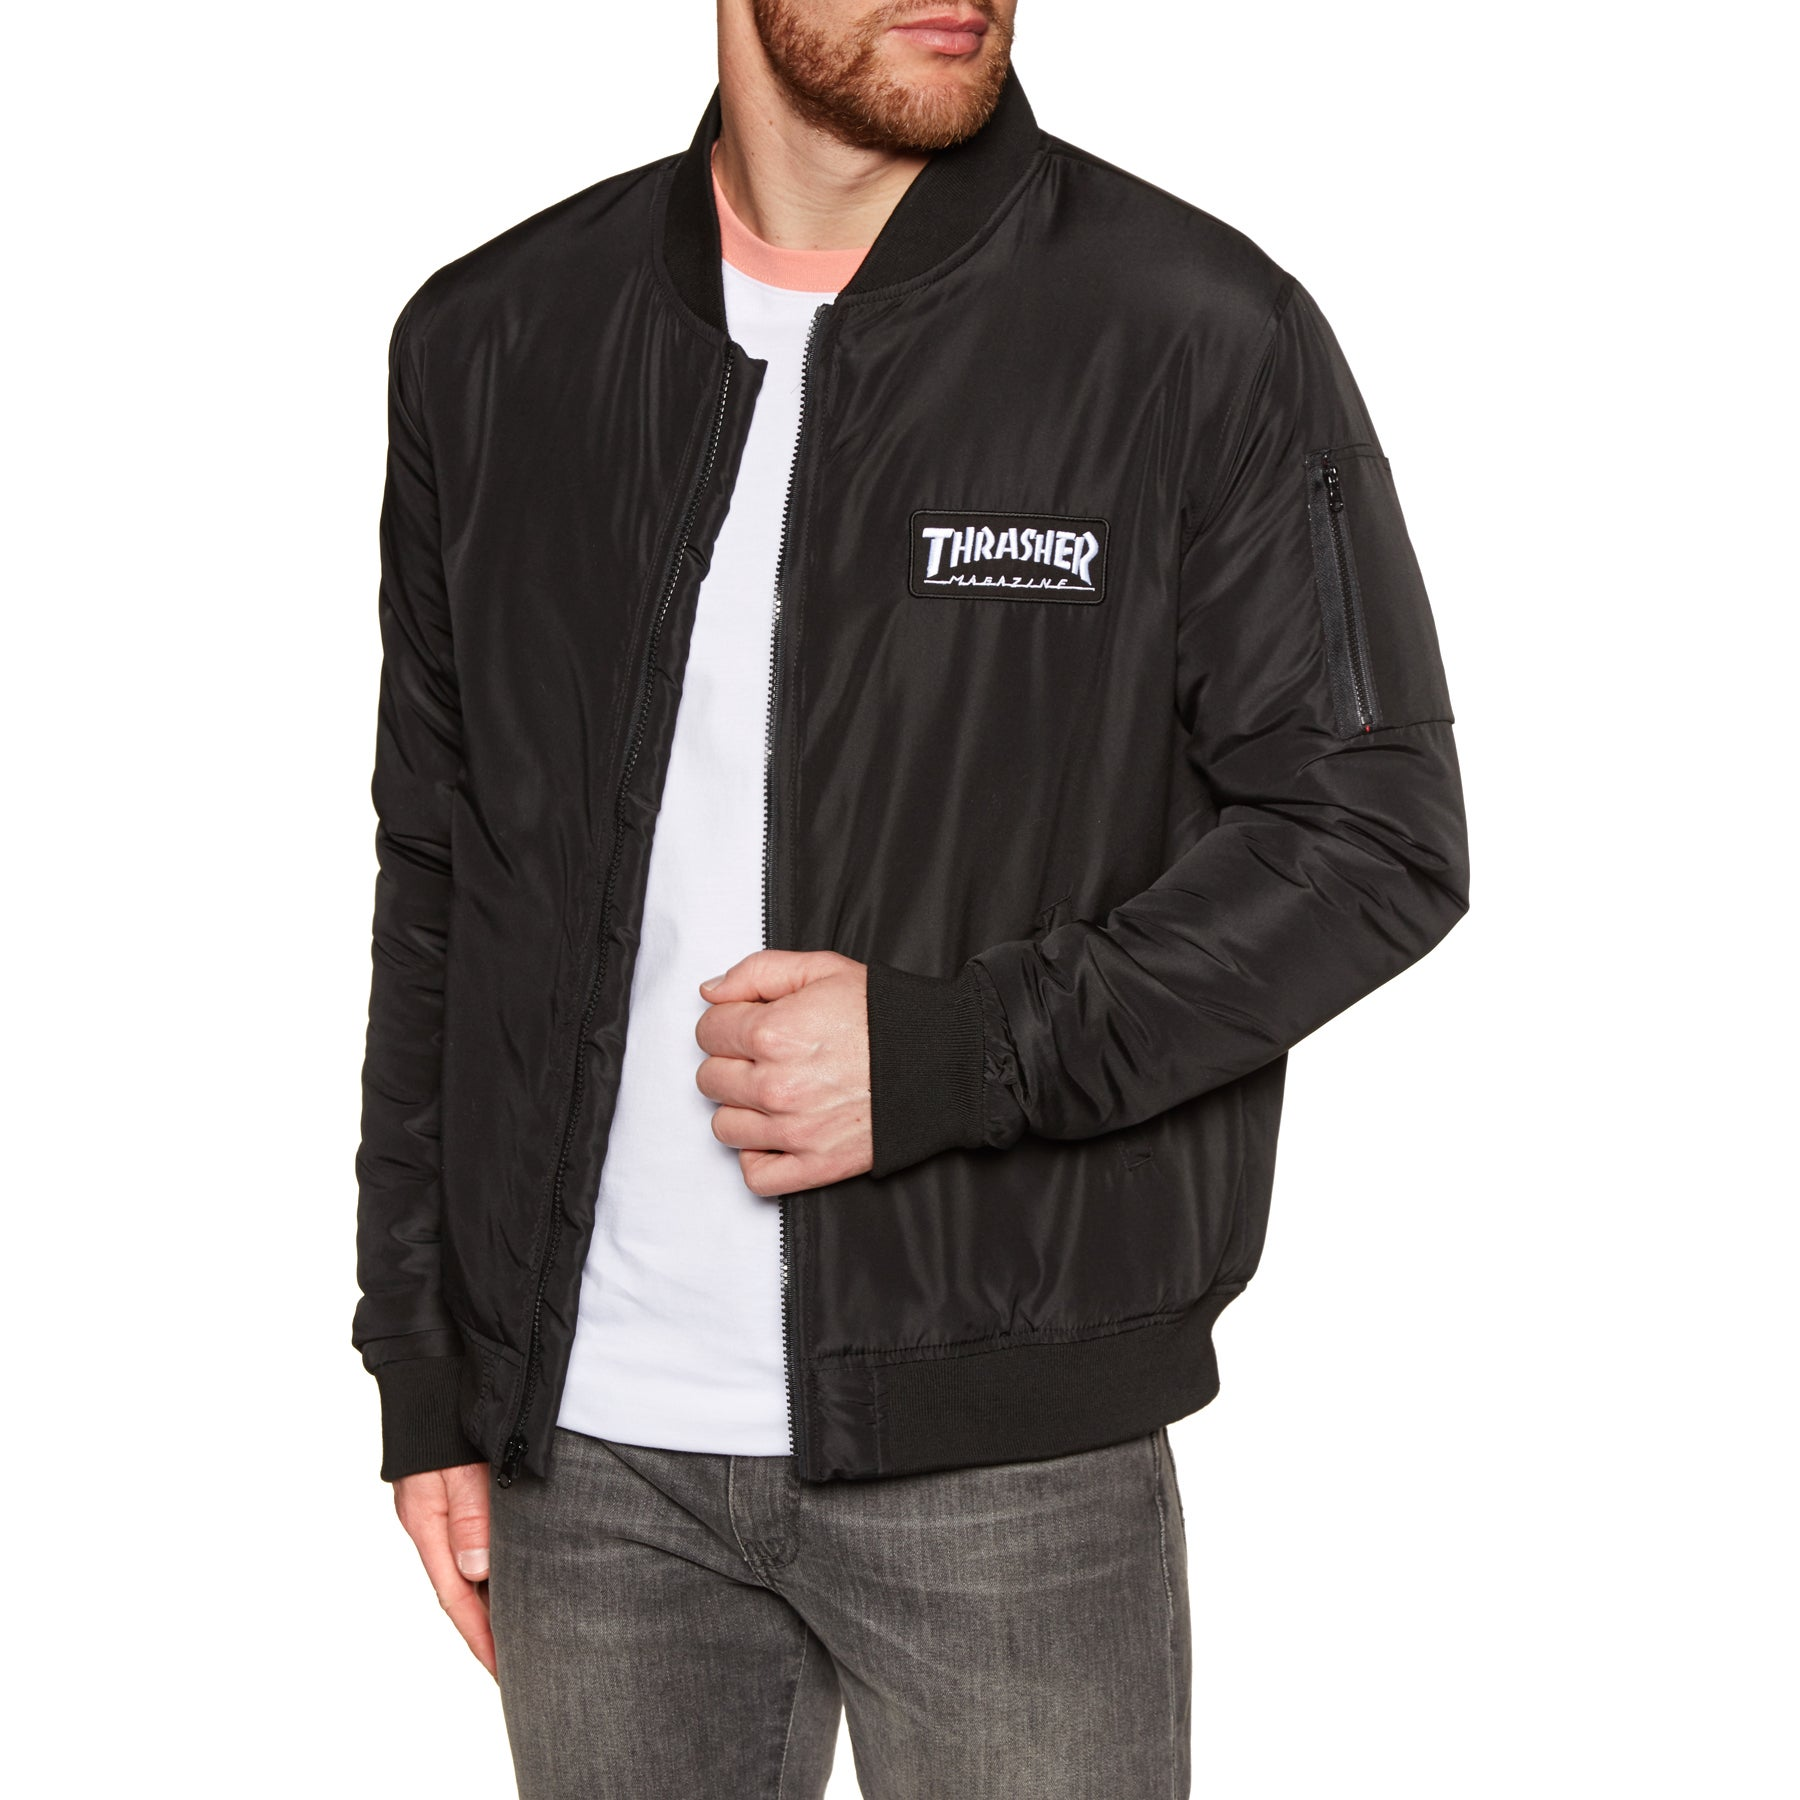 Thrasher Bomber Jacket - Black